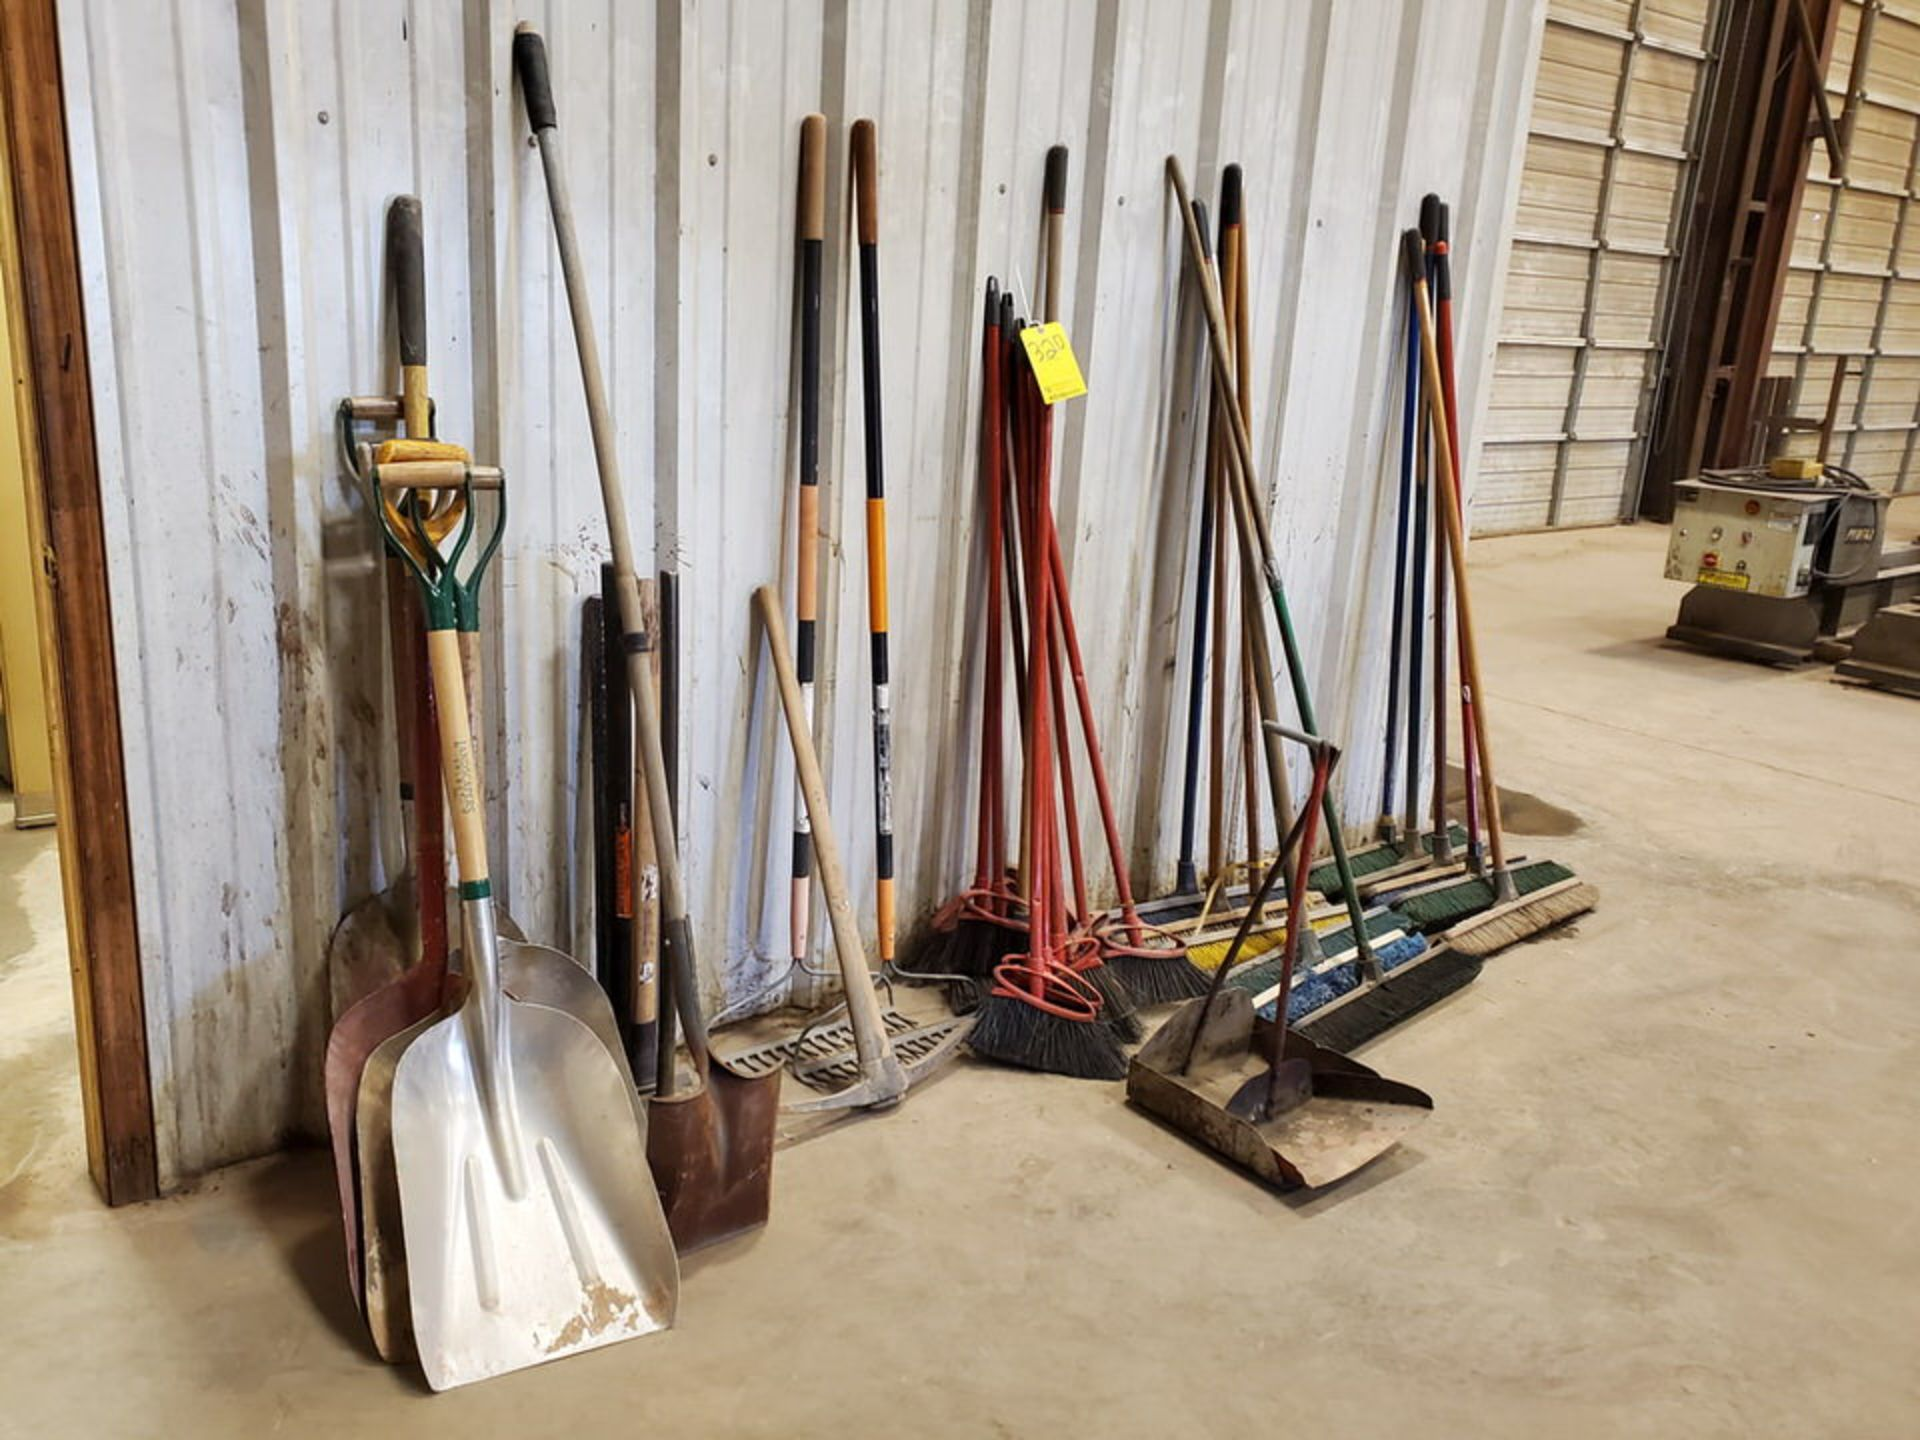 Assorted Cleaning & Yard Matl To Include But Not Limited To: Brooms, Shovels, Rakes, Dust Pans, - Image 6 of 6